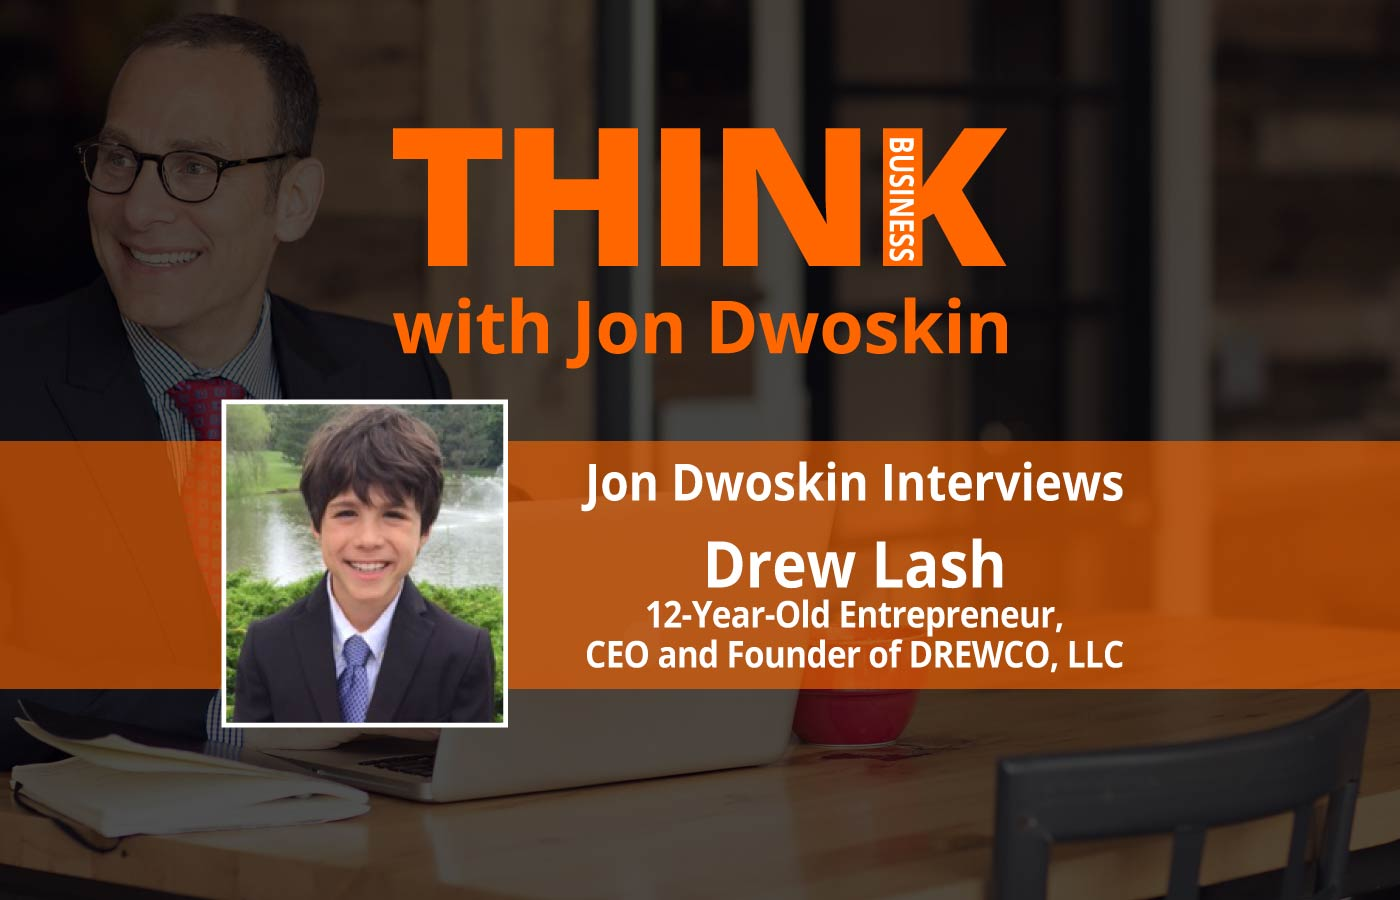 THINK Business: Jon Dwoskin Interviews Drew Lash, 12-Year-Old Entrepreneur, CEO and Founder of DREWco